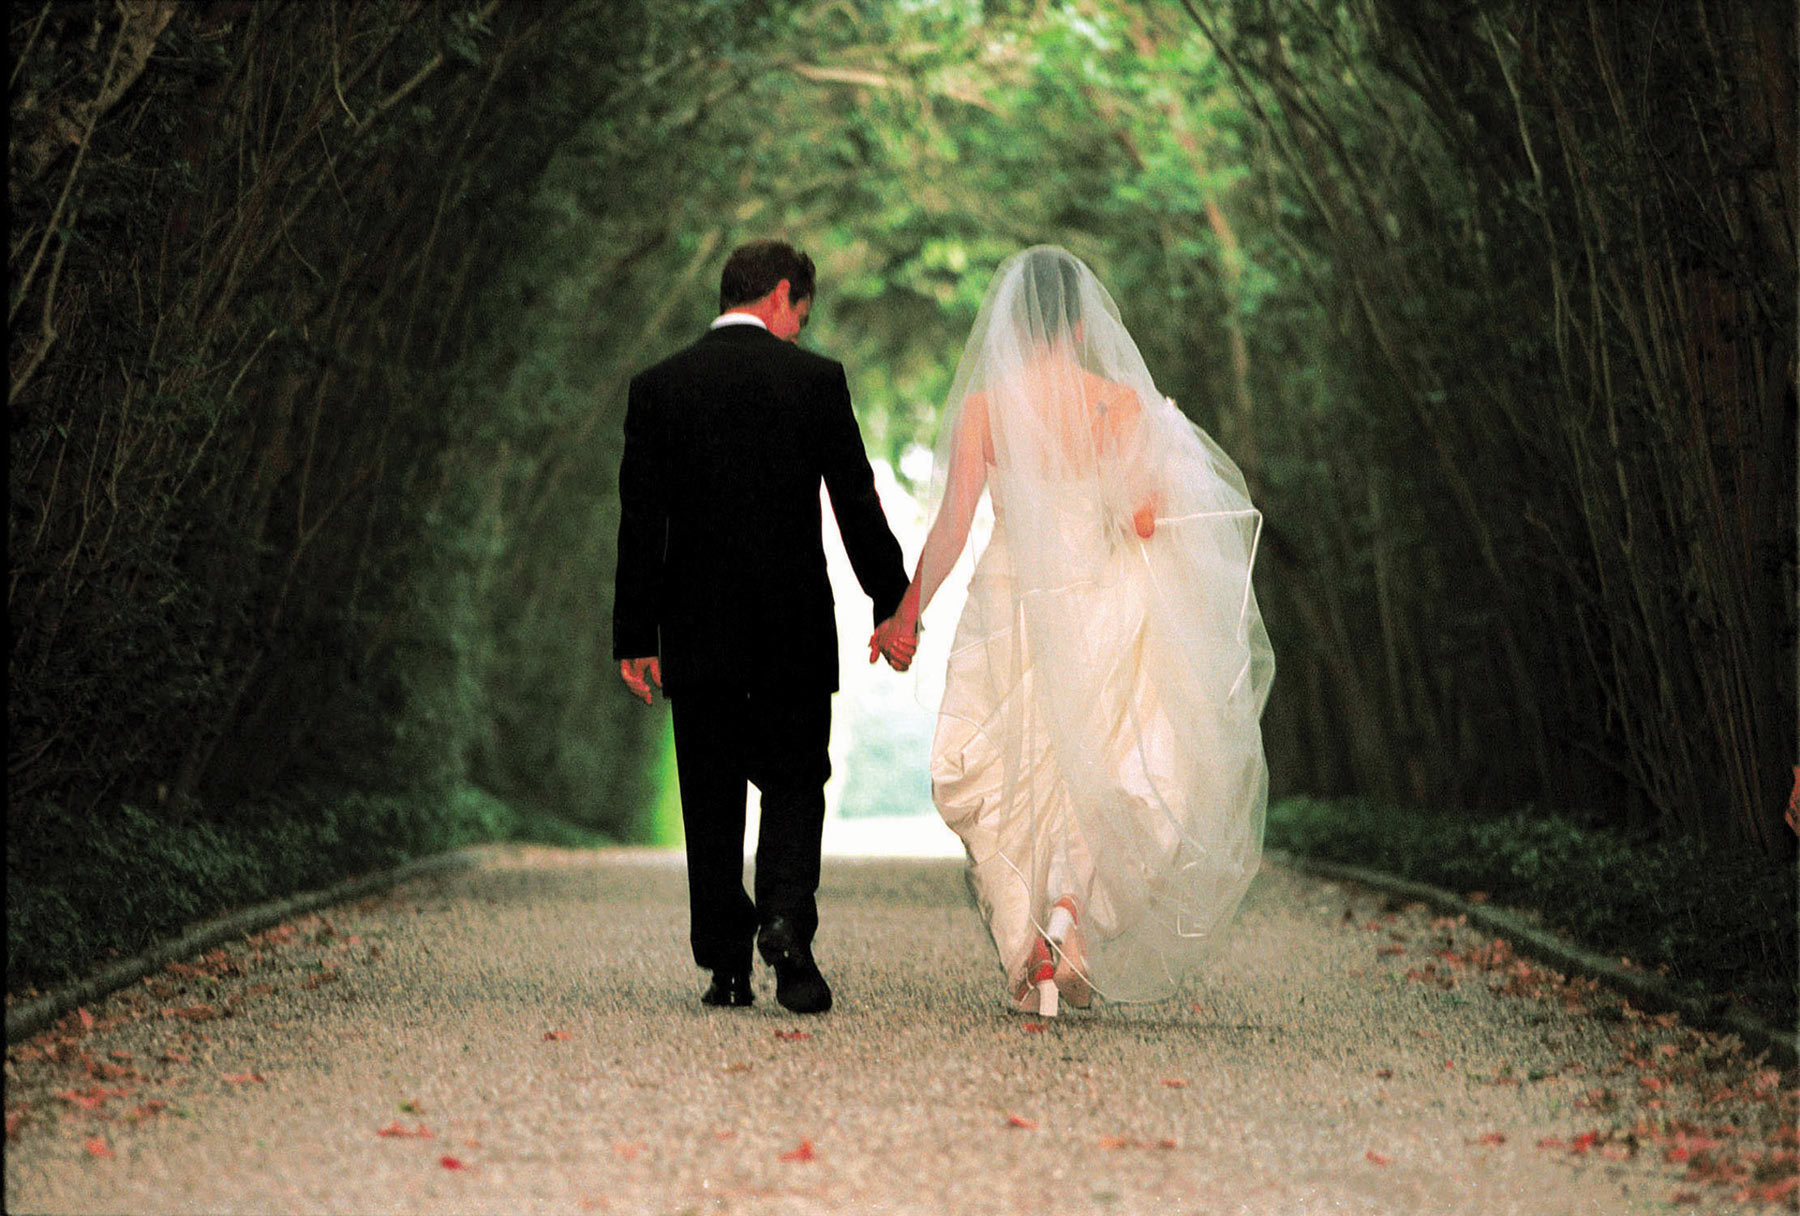 Bride and groom holding hands - planning fights to avoid